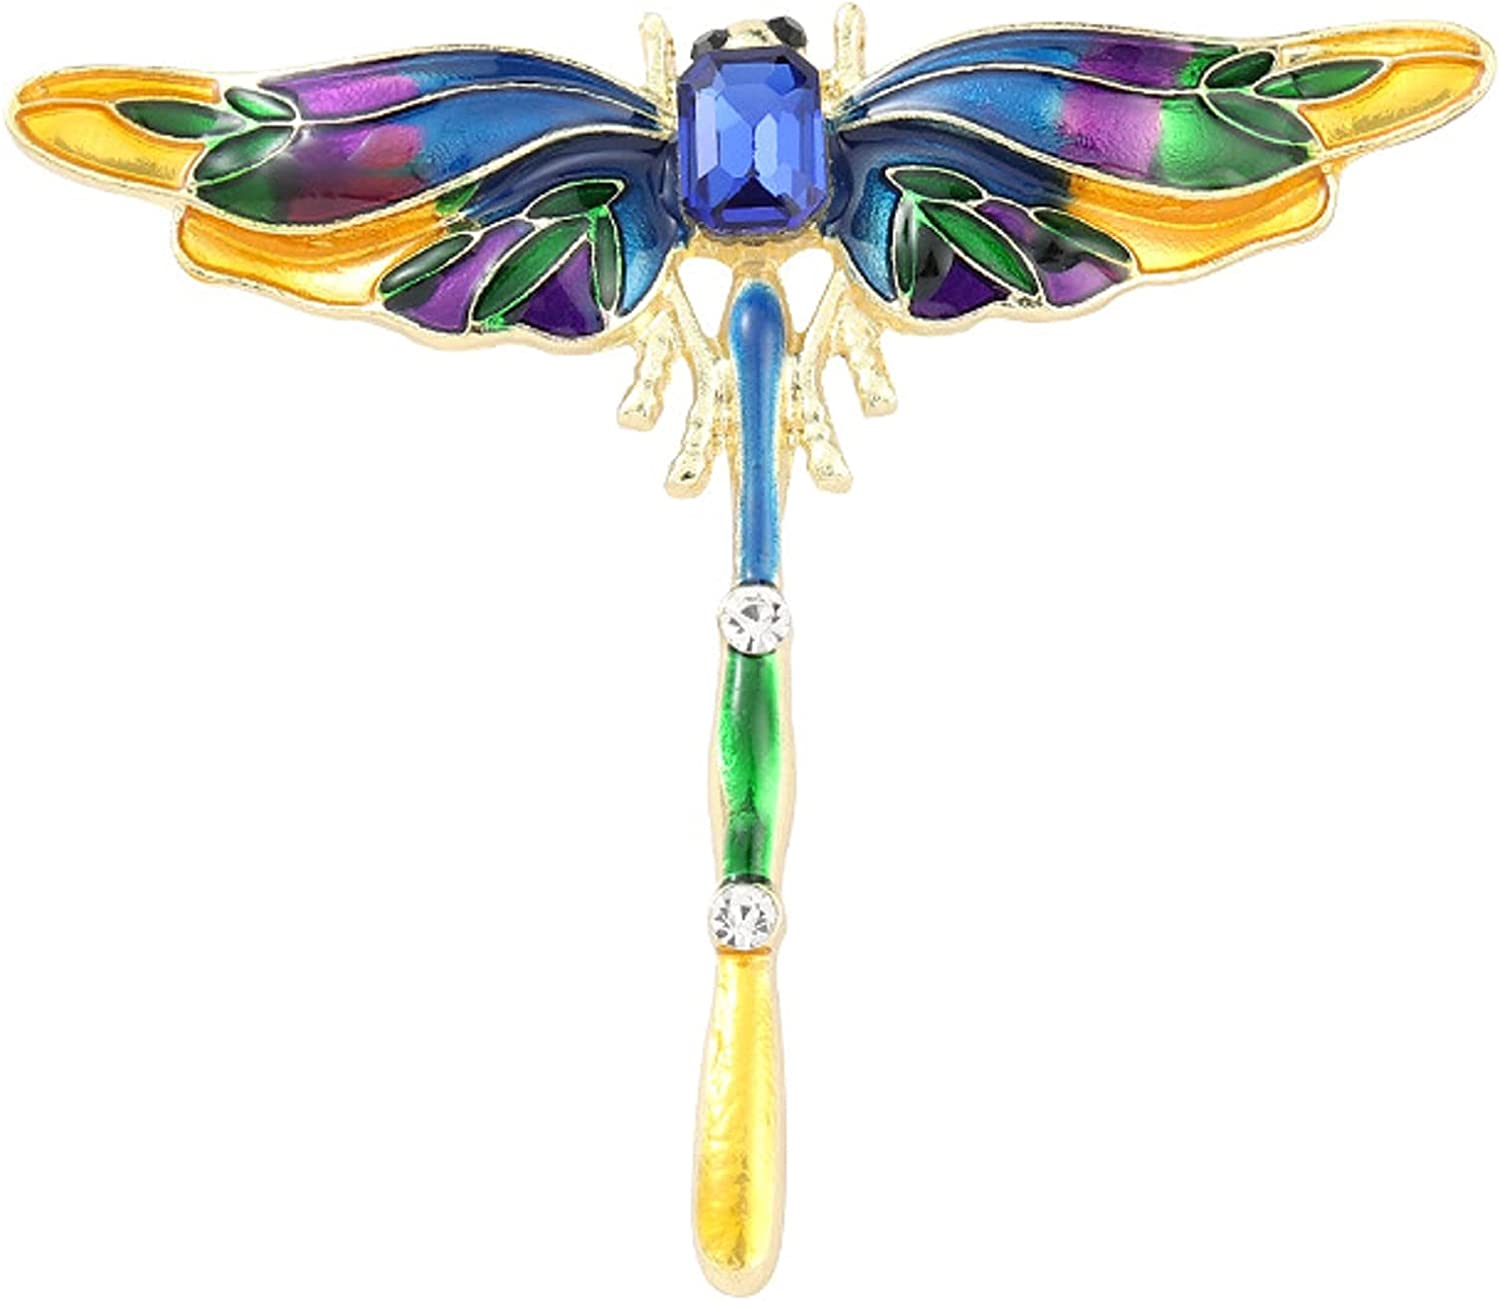 Elegant Dragonfly Enamel Brooch Pin for Women Vintage Lapel Pin Artificial Jewelry Rhinestone Crystal Accessory for Coats Backpacks Badges Hats Bags for Women Girls Gift